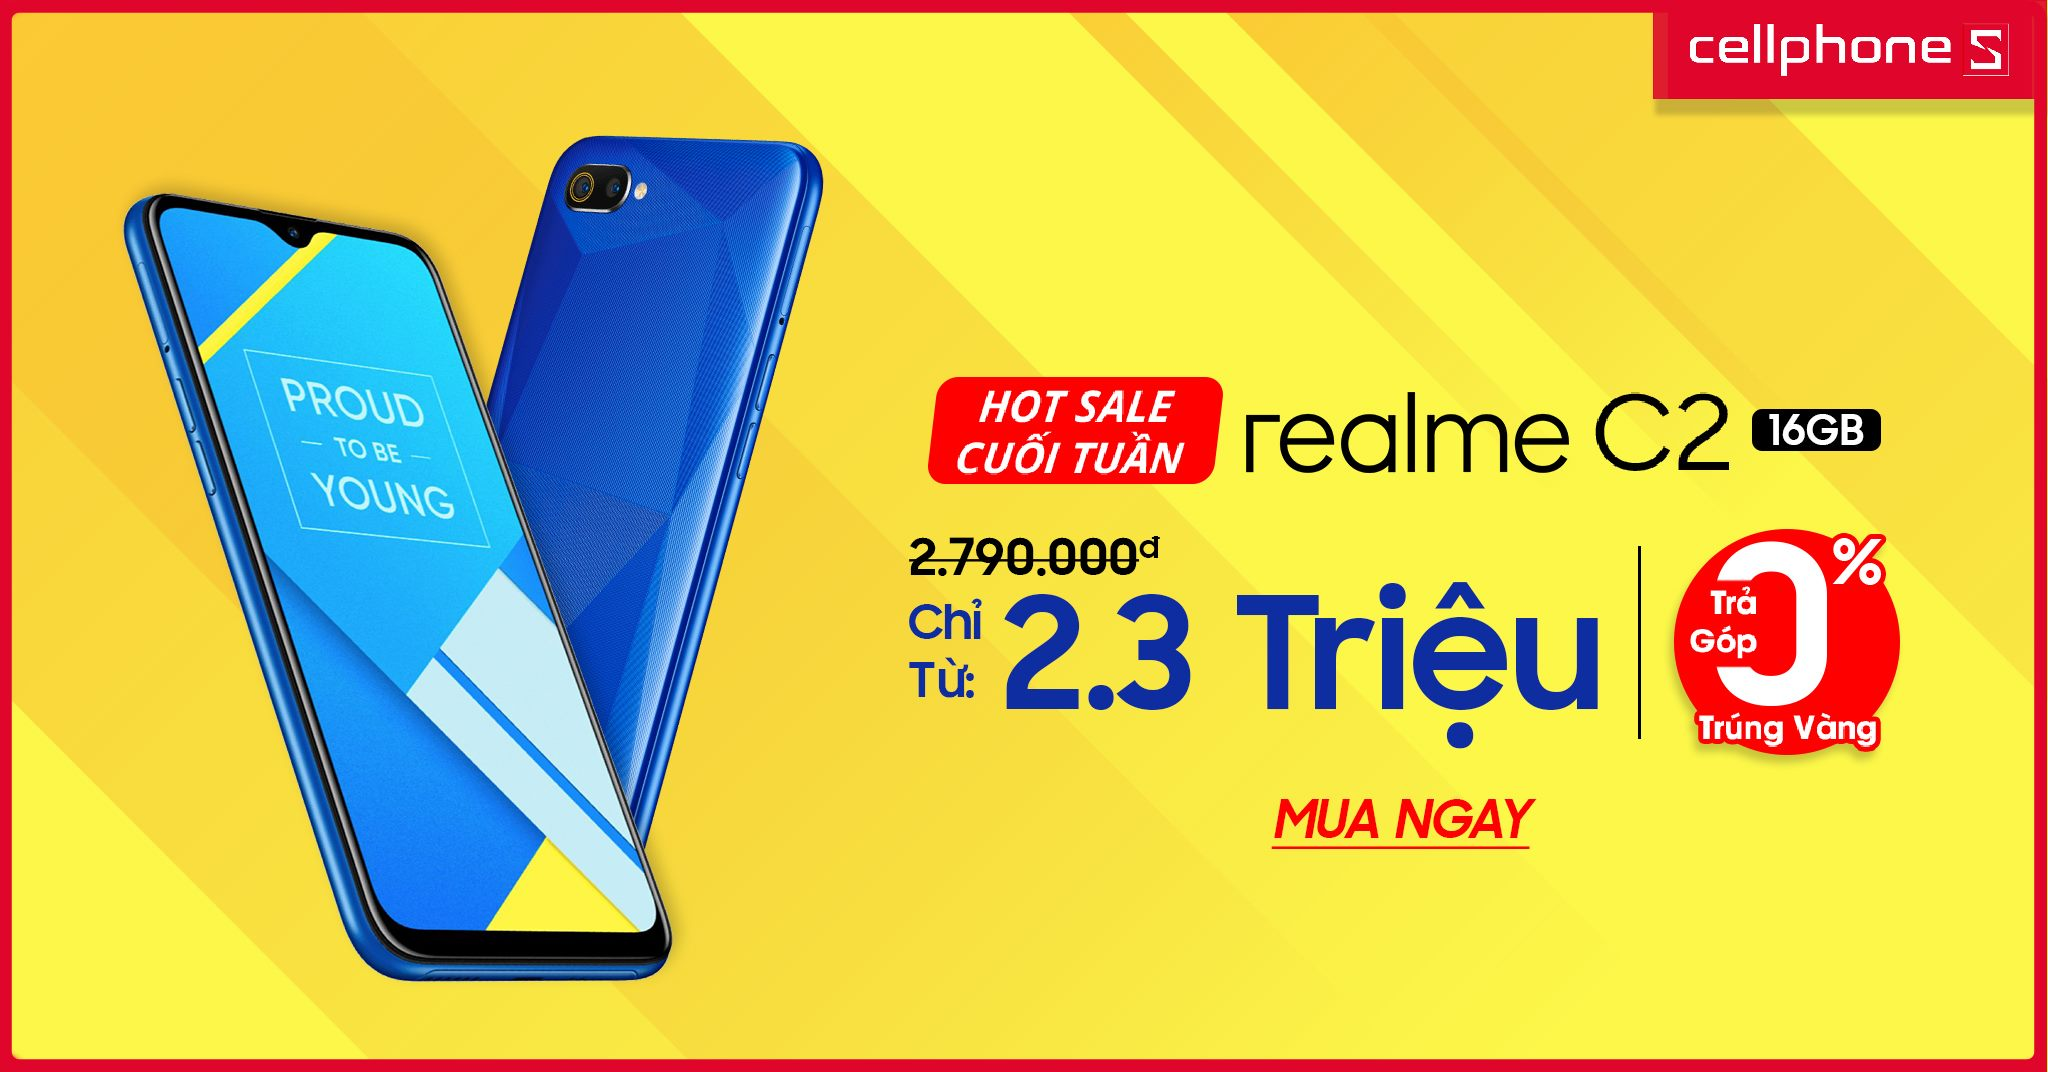 Sforum - Latest technology information page 3-4 [HOT SALE] The dual Realme C2 camera, the water drop screen is now cheaper